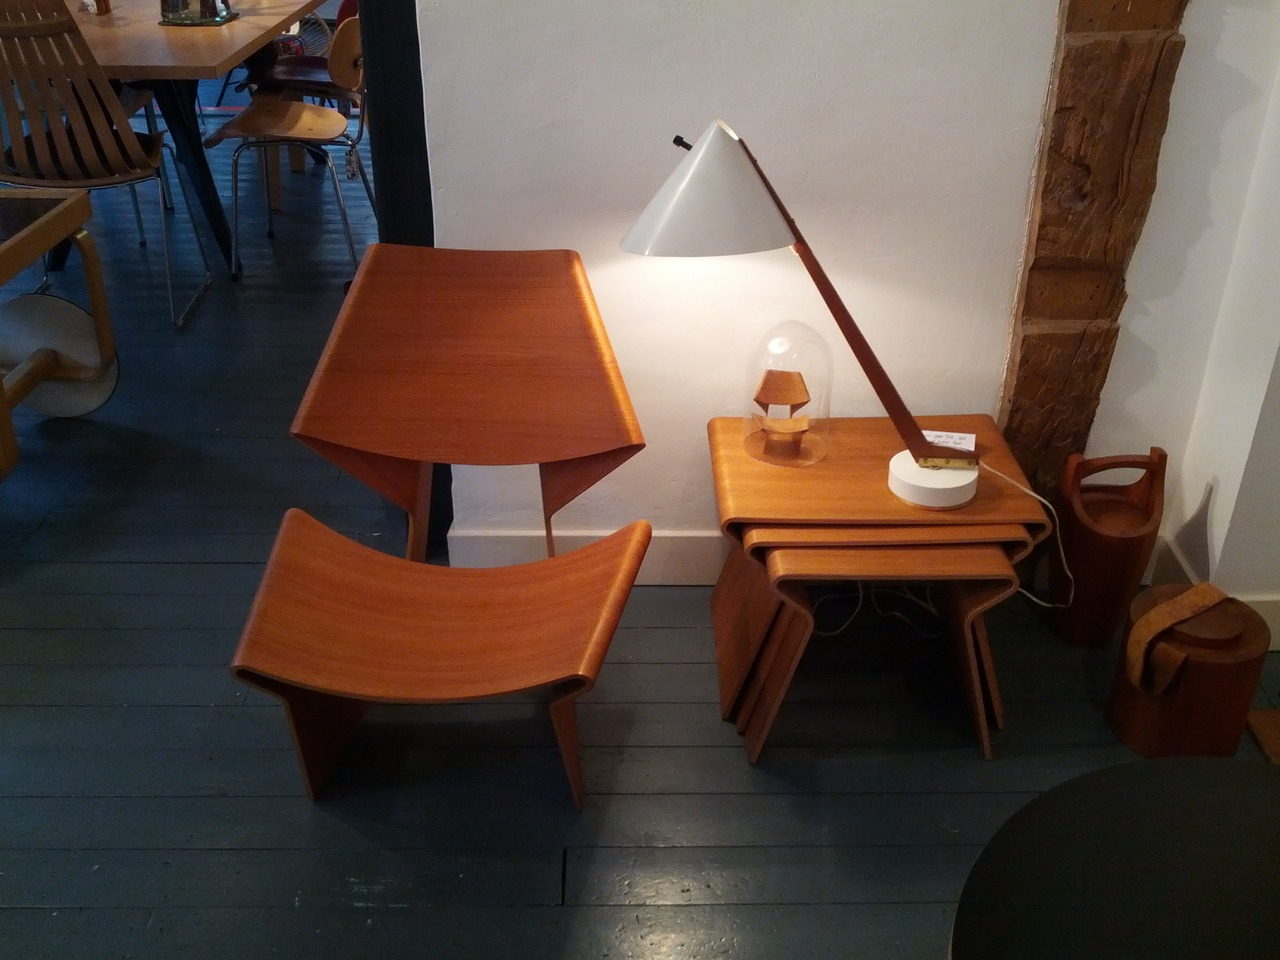 01_GreteJalk_Chair_and_Nesting_Tables